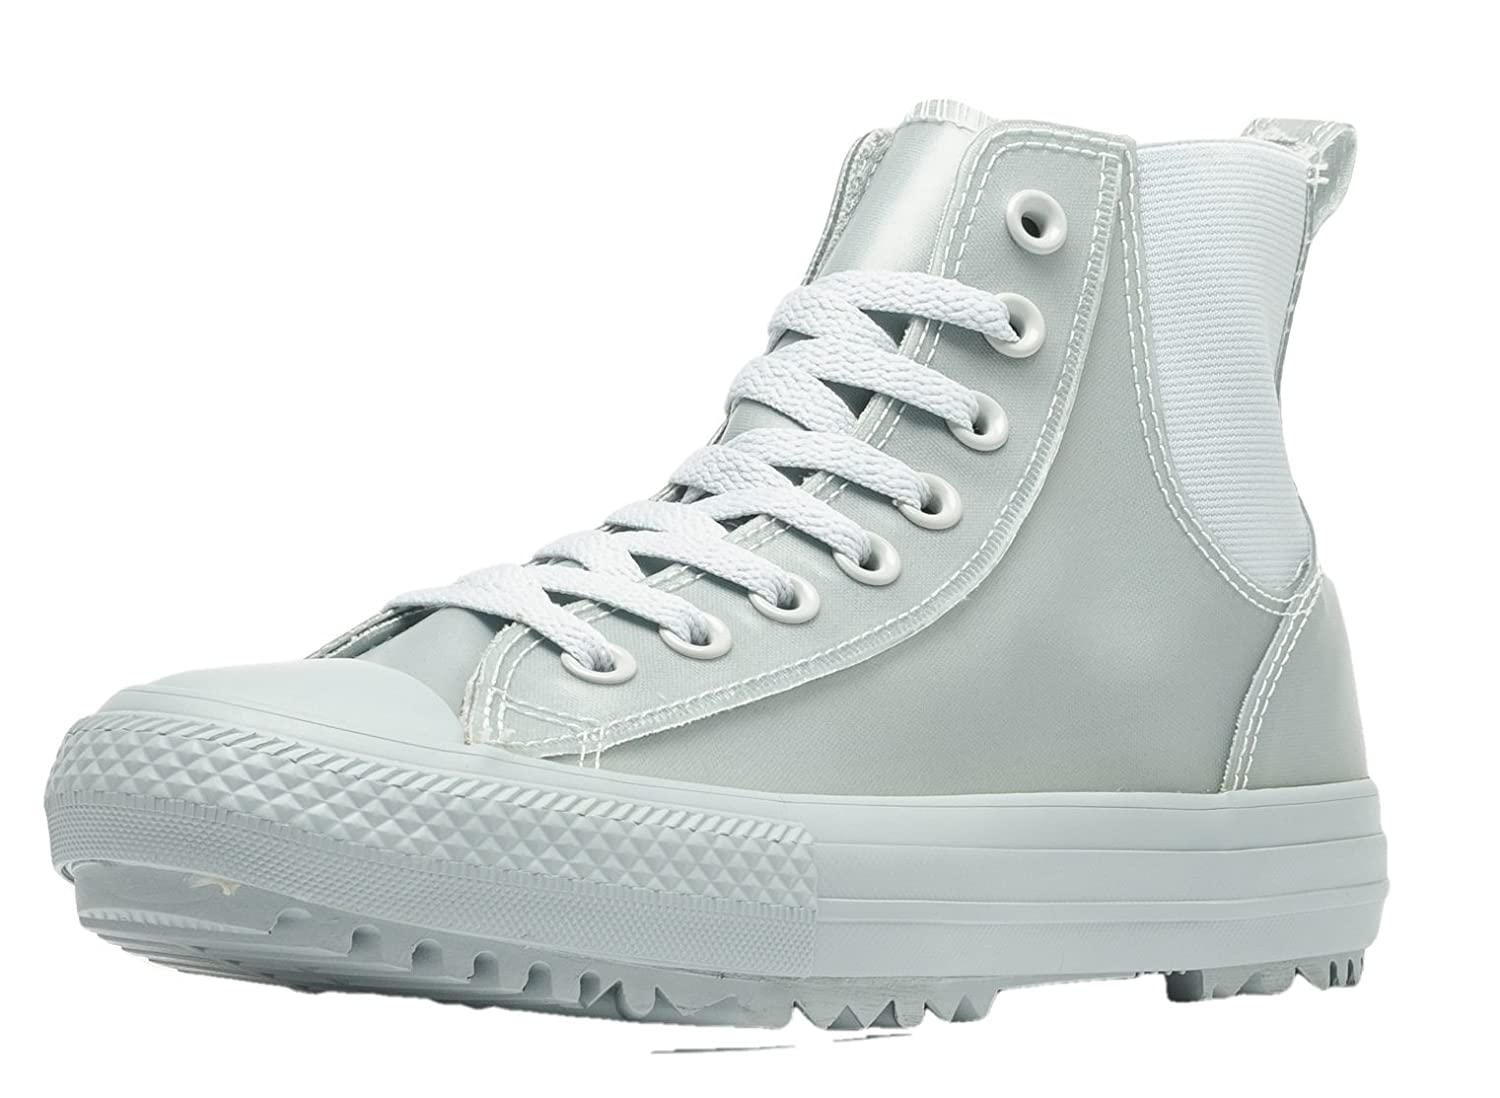 Converse Women's Chuck Taylor All Star Rubber Chelsee Boot